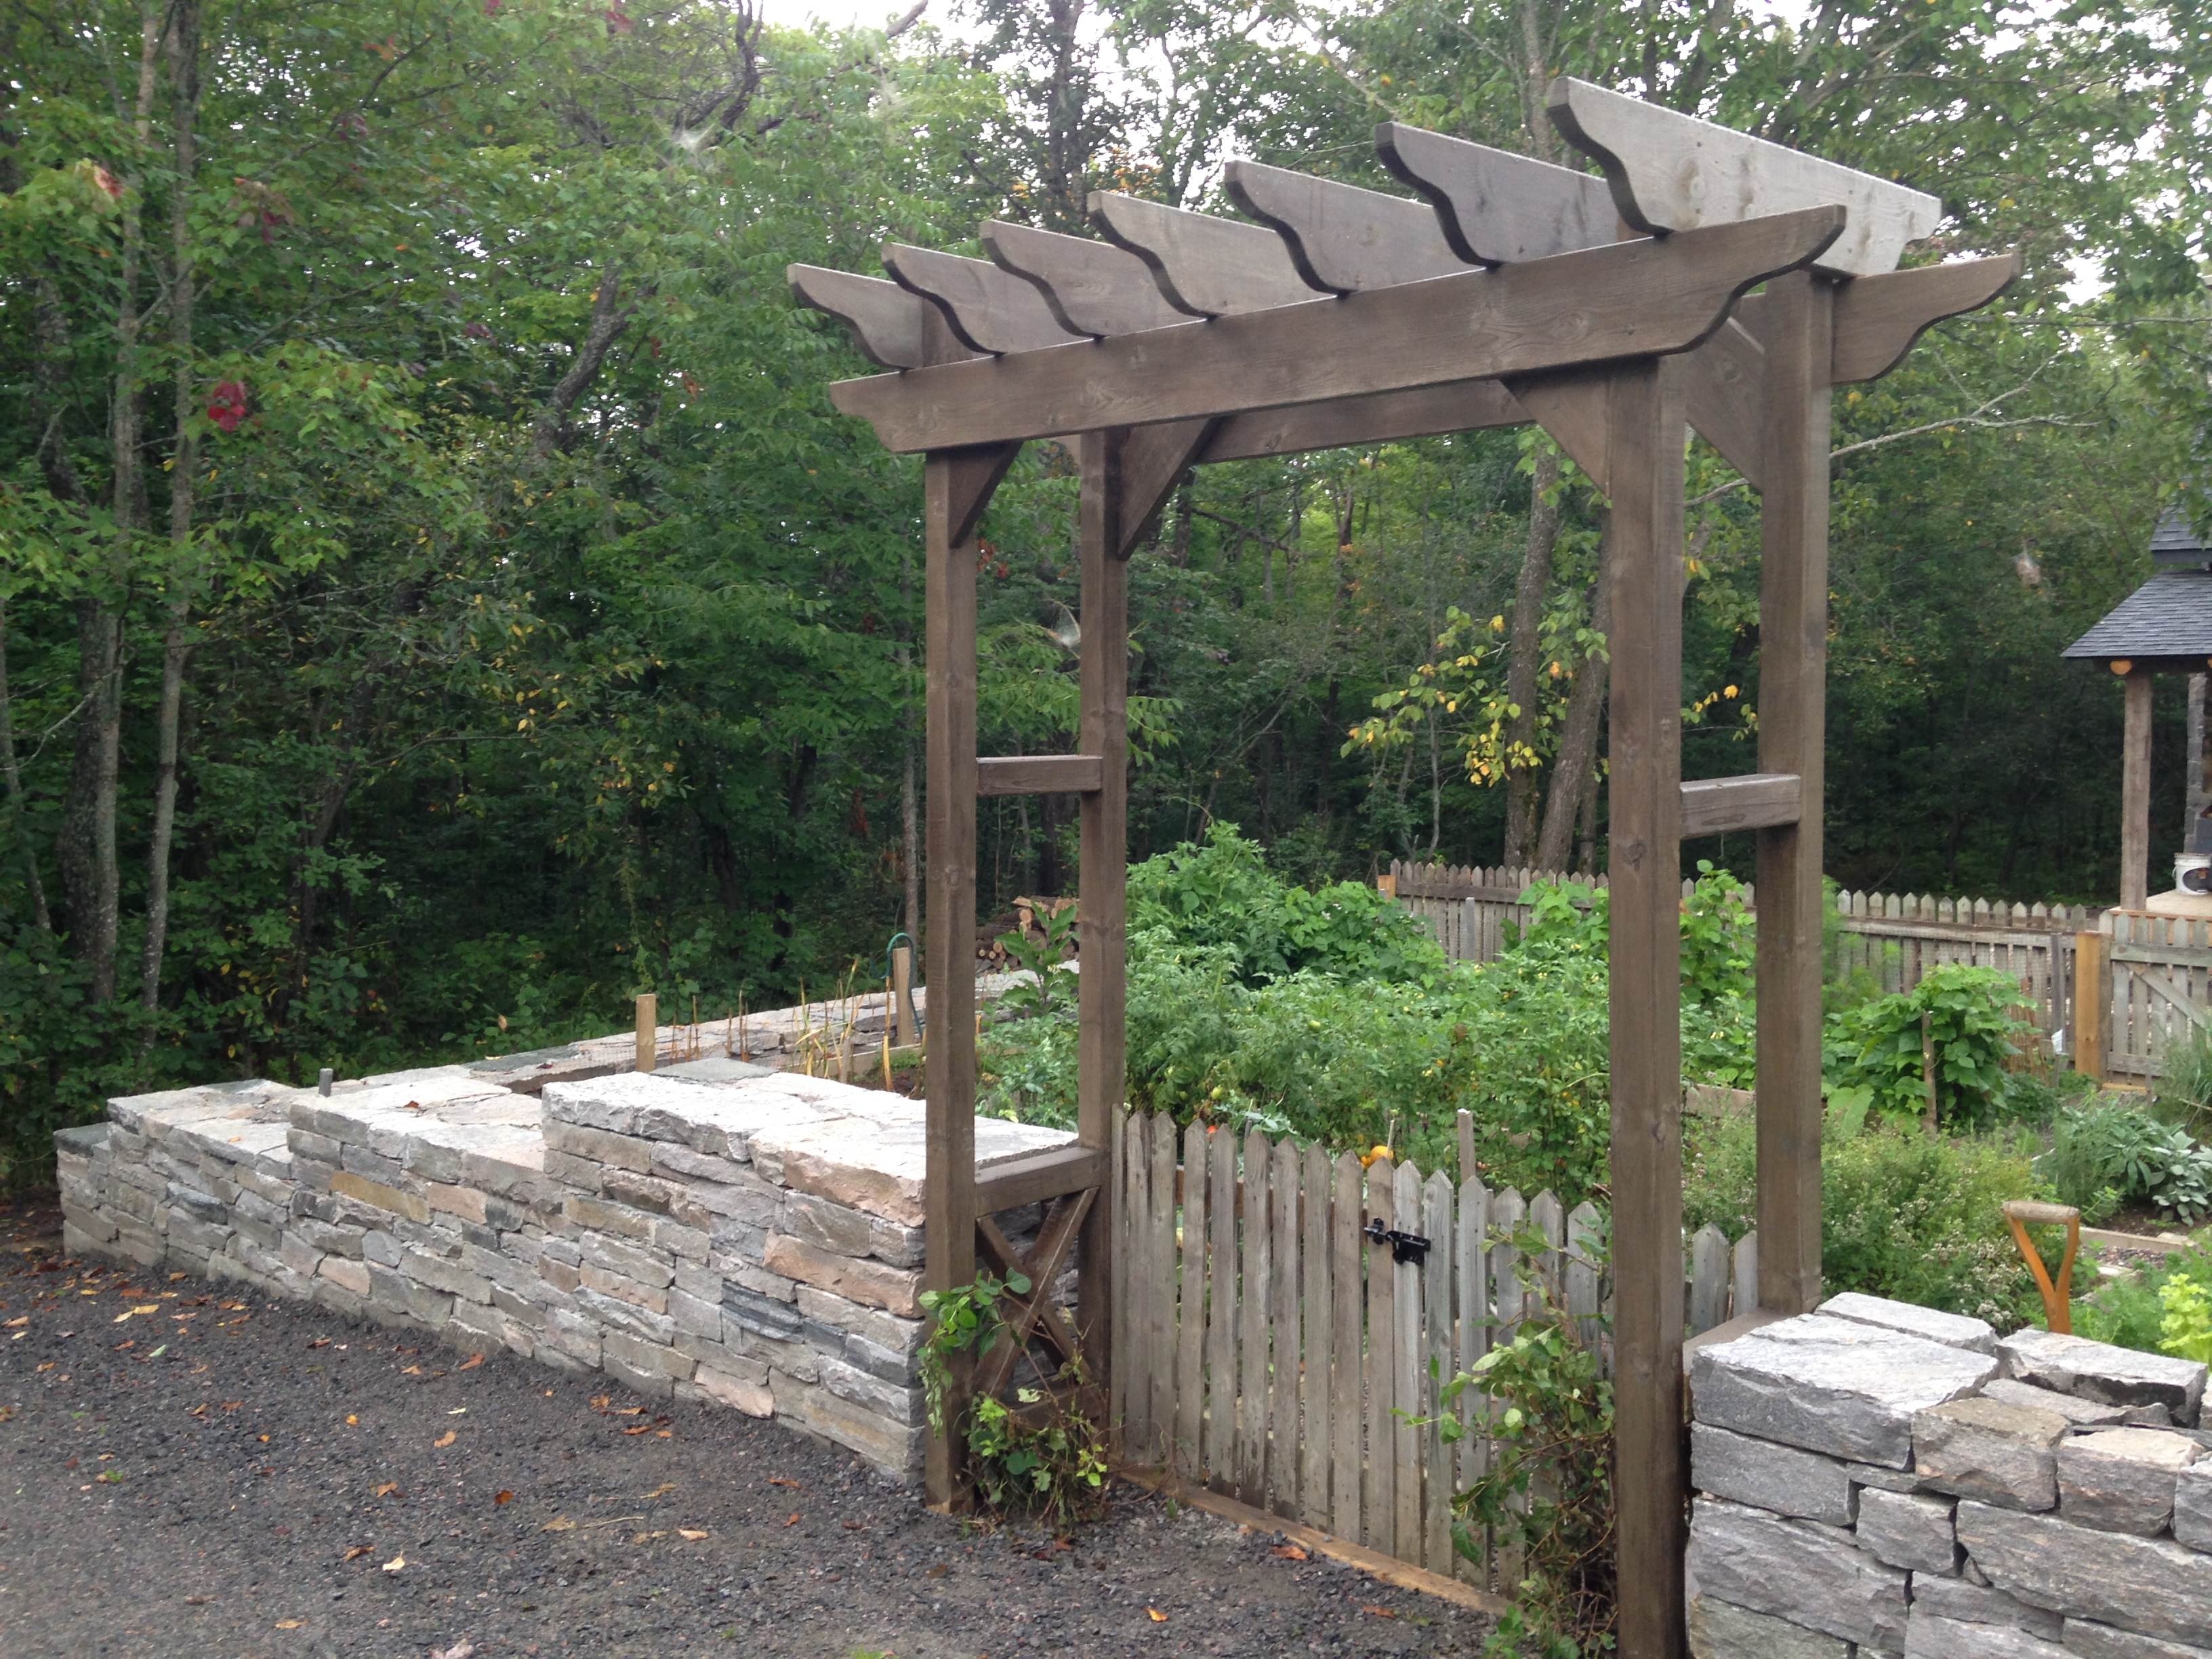 Dry stack retaining wall and trellis